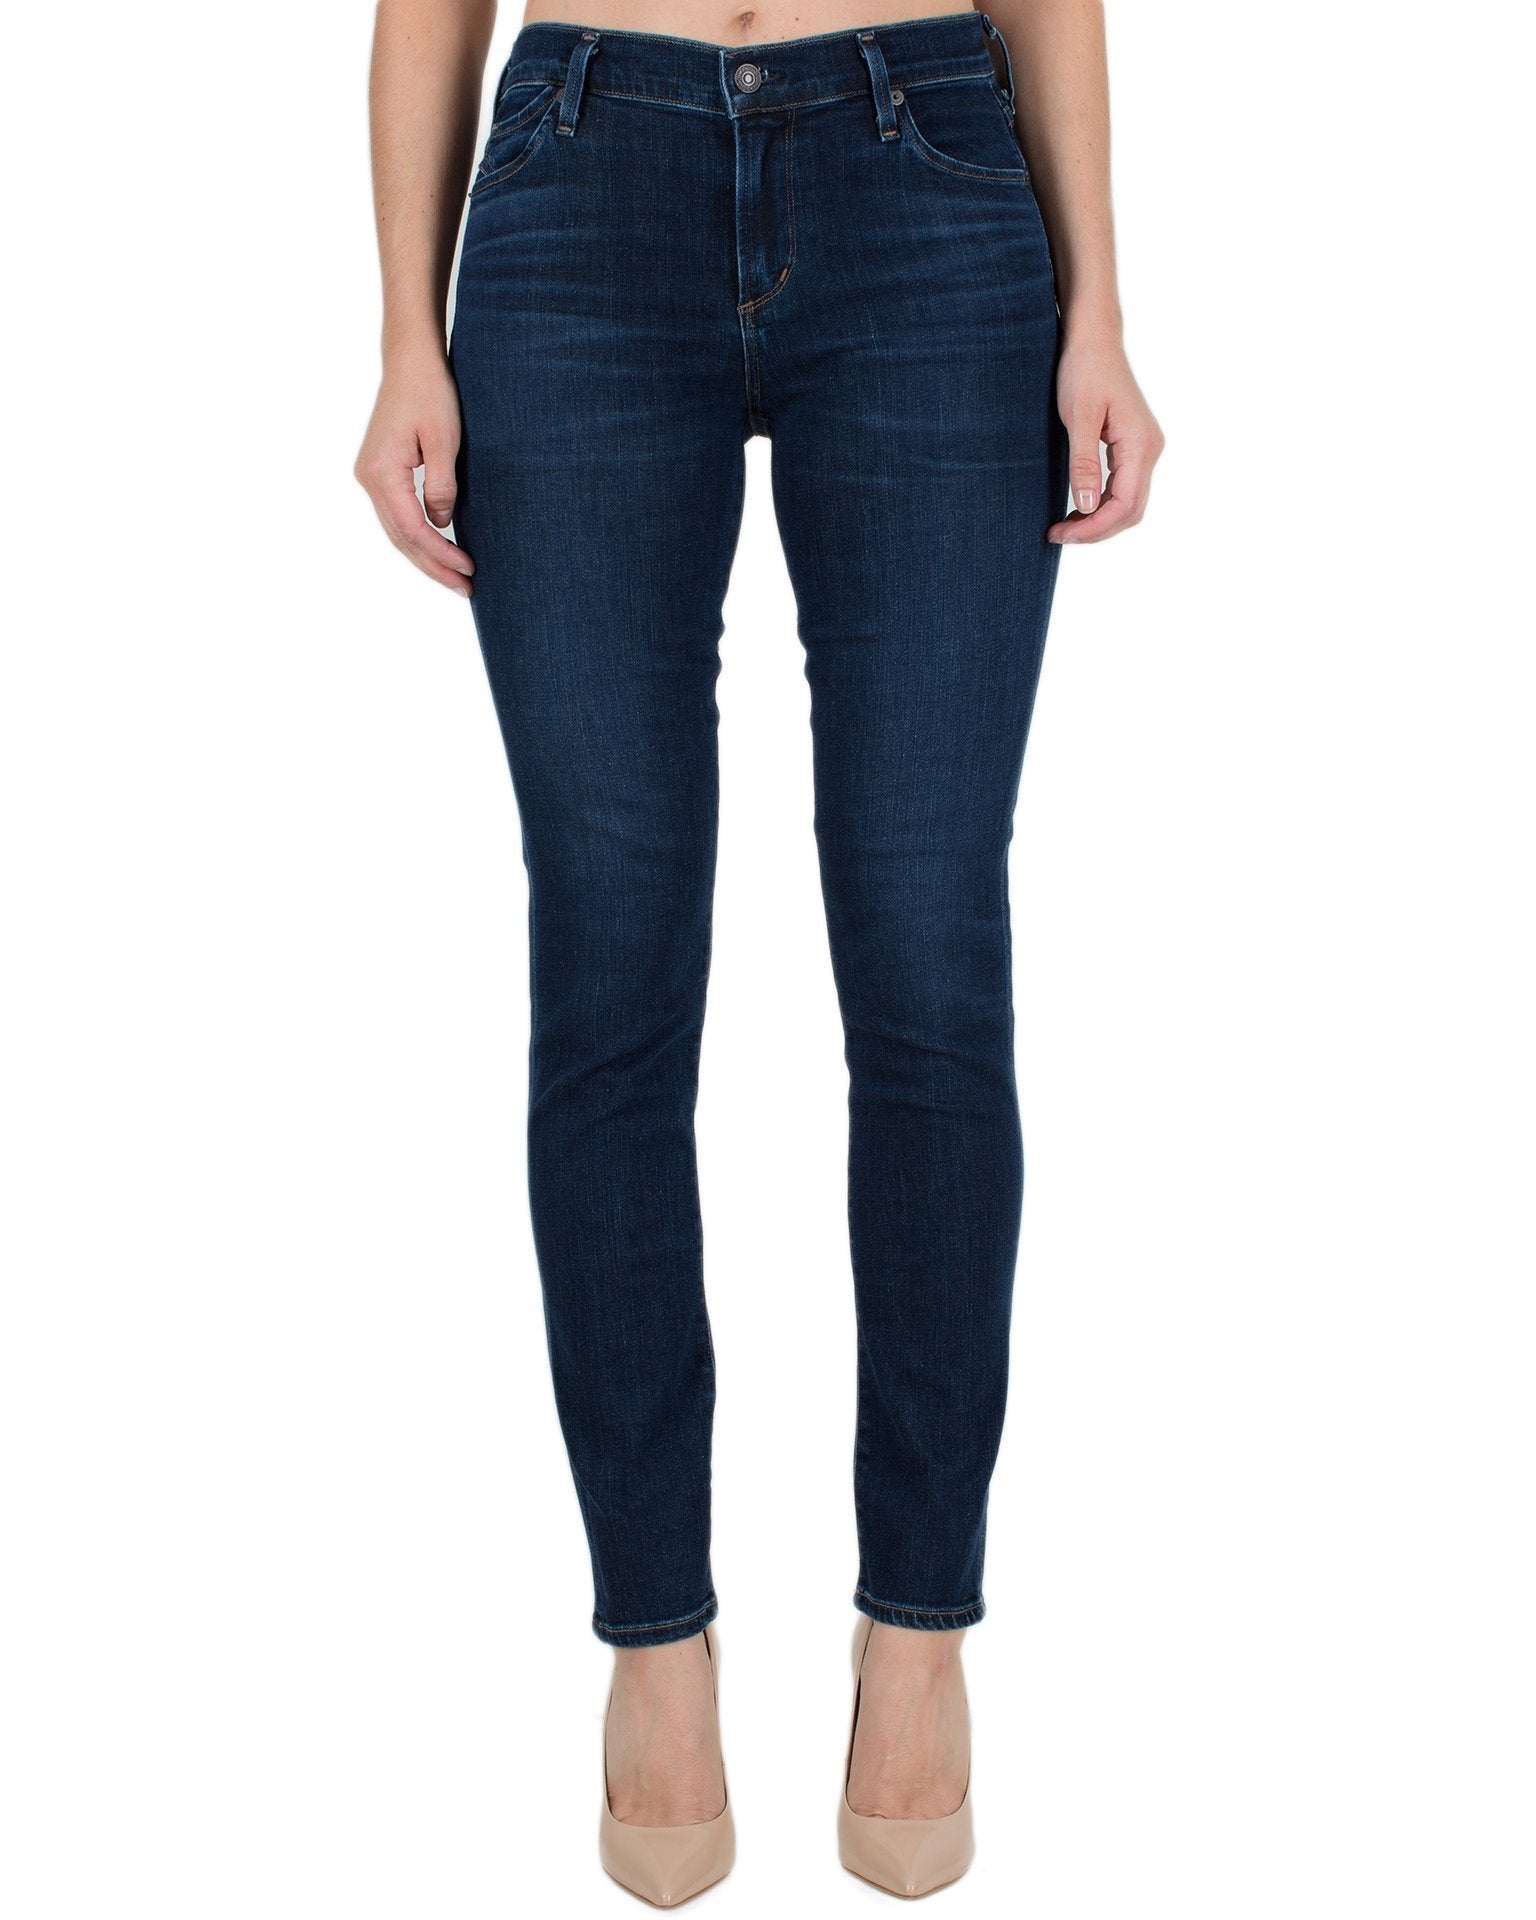 Citizen's of Humanity Denim Te Amo / 24 Avedon Ultra Skinny